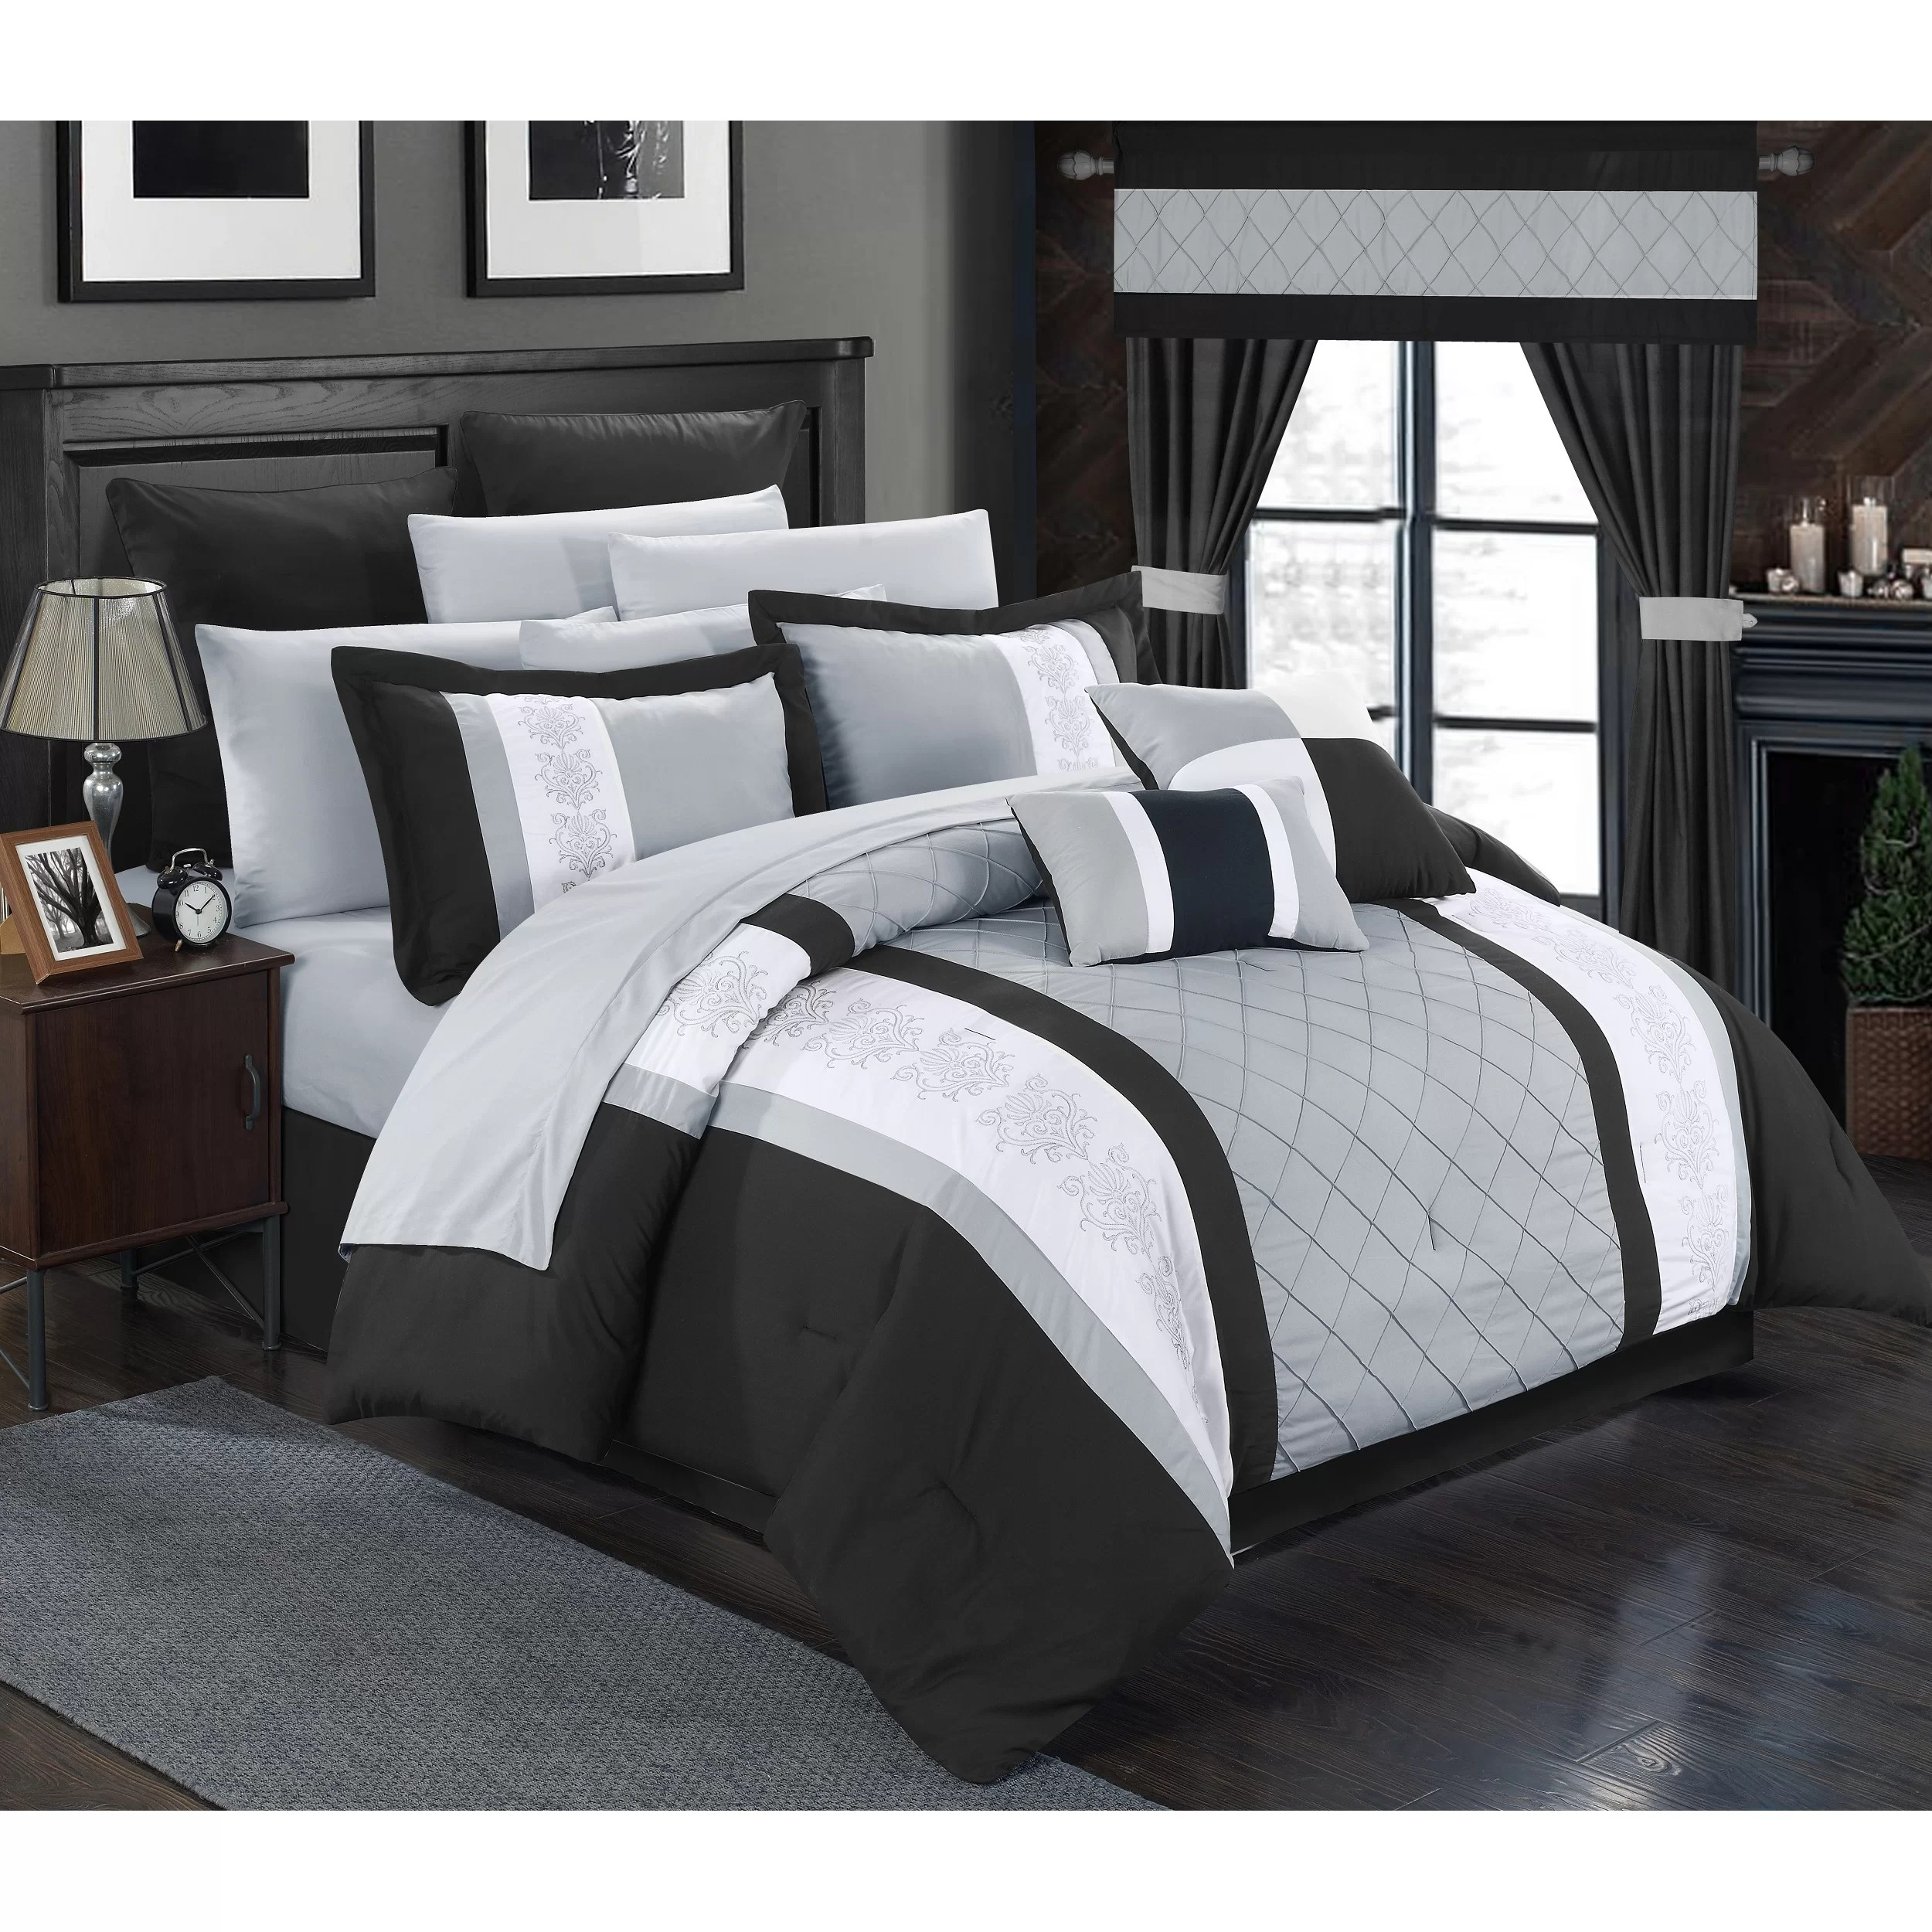 Chic Home Danielle 24 Piece Comforter Set & Reviews